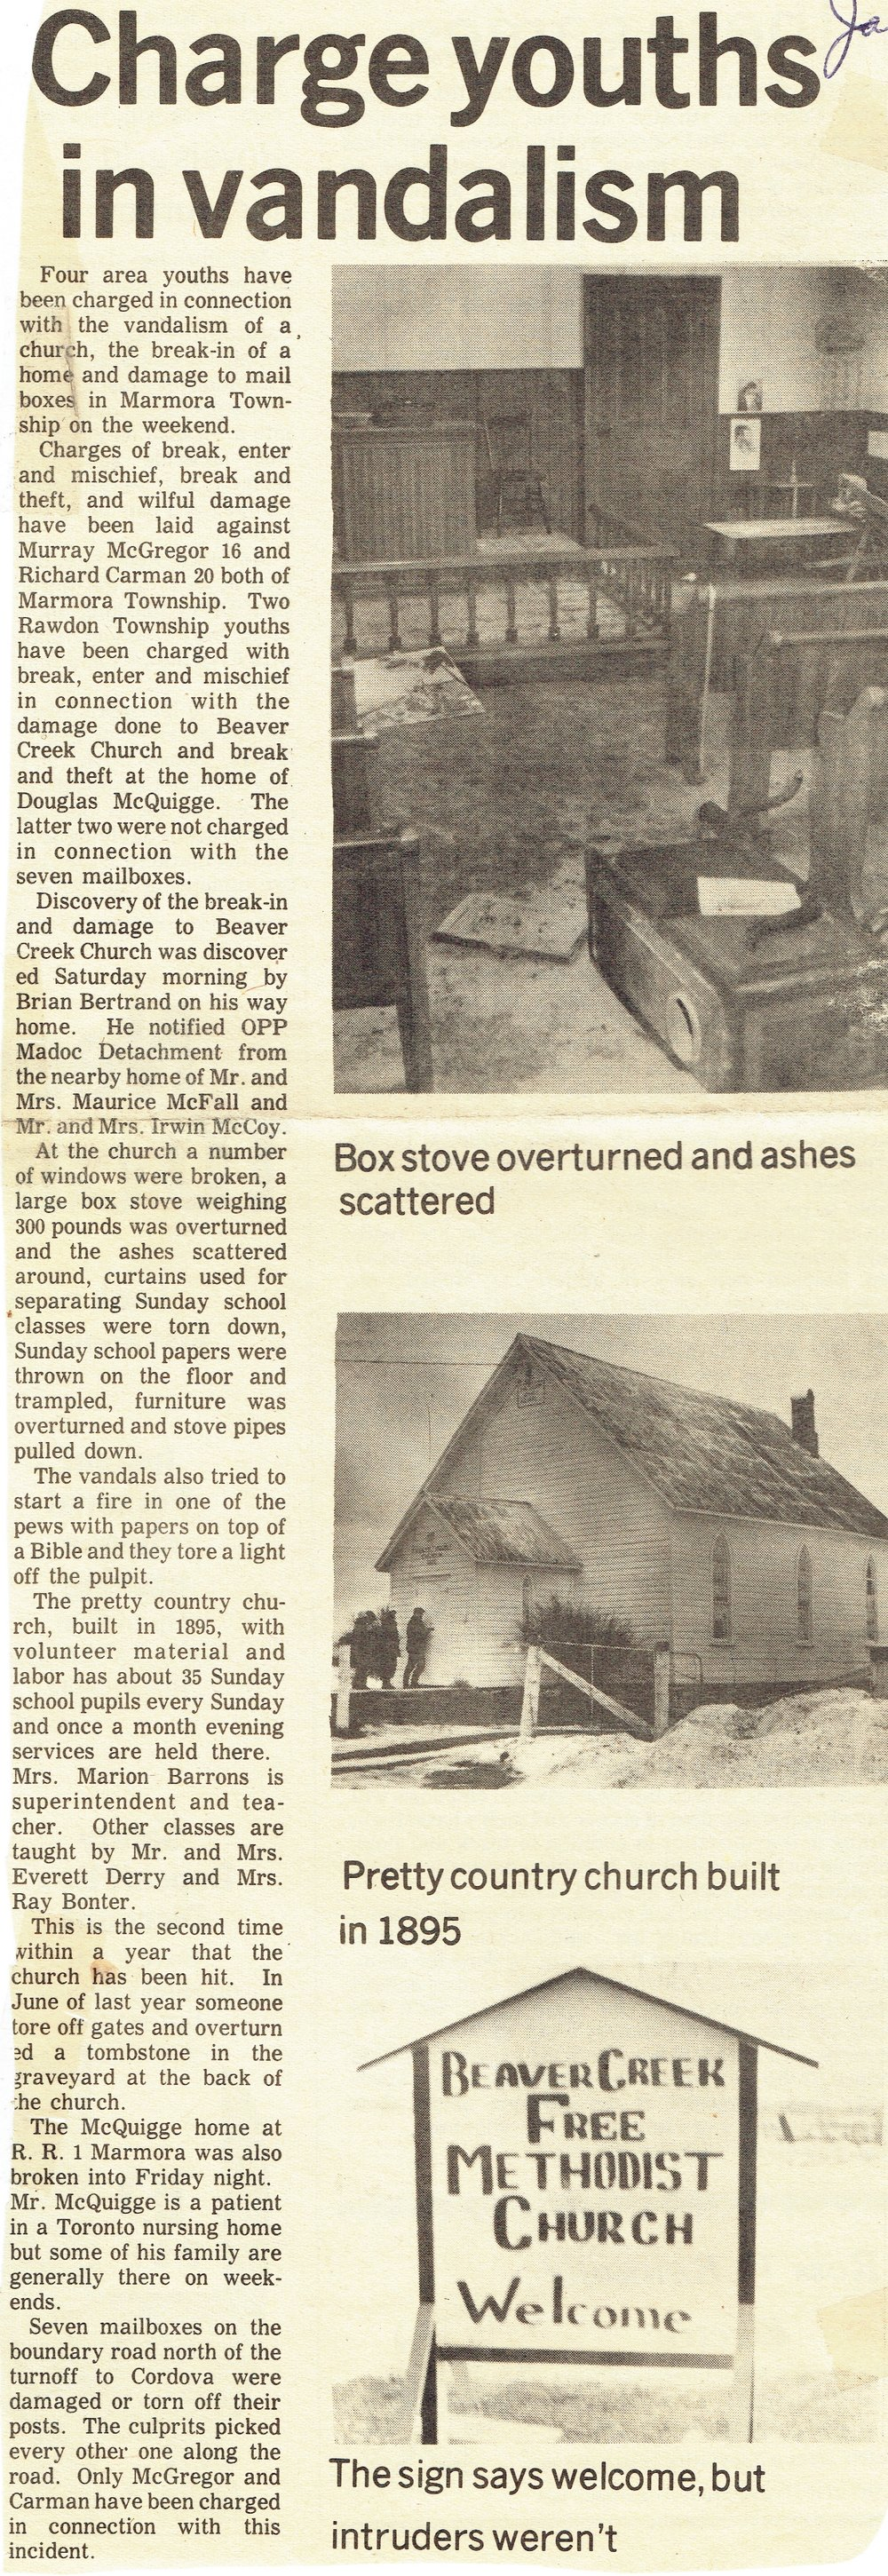 Beaver Creek Church vandalism 1974.jpg